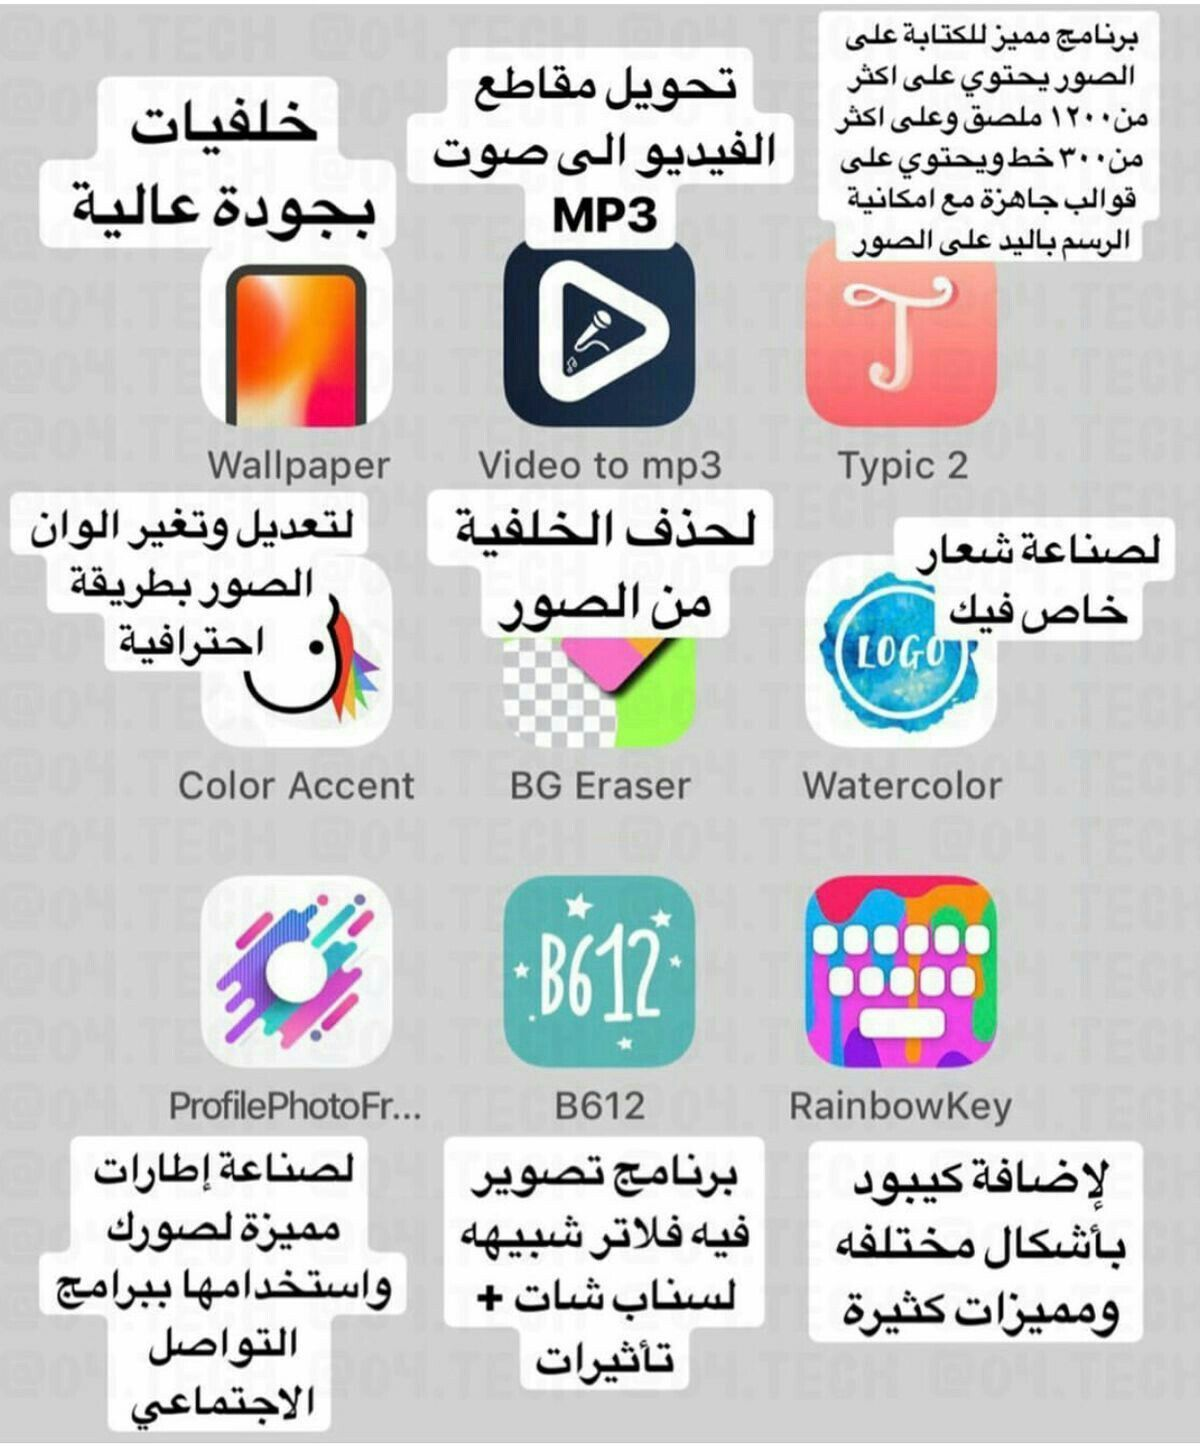 Pin By Ranno On تطبيقات In 2020 Iphone App Layout Application Iphone App Layout